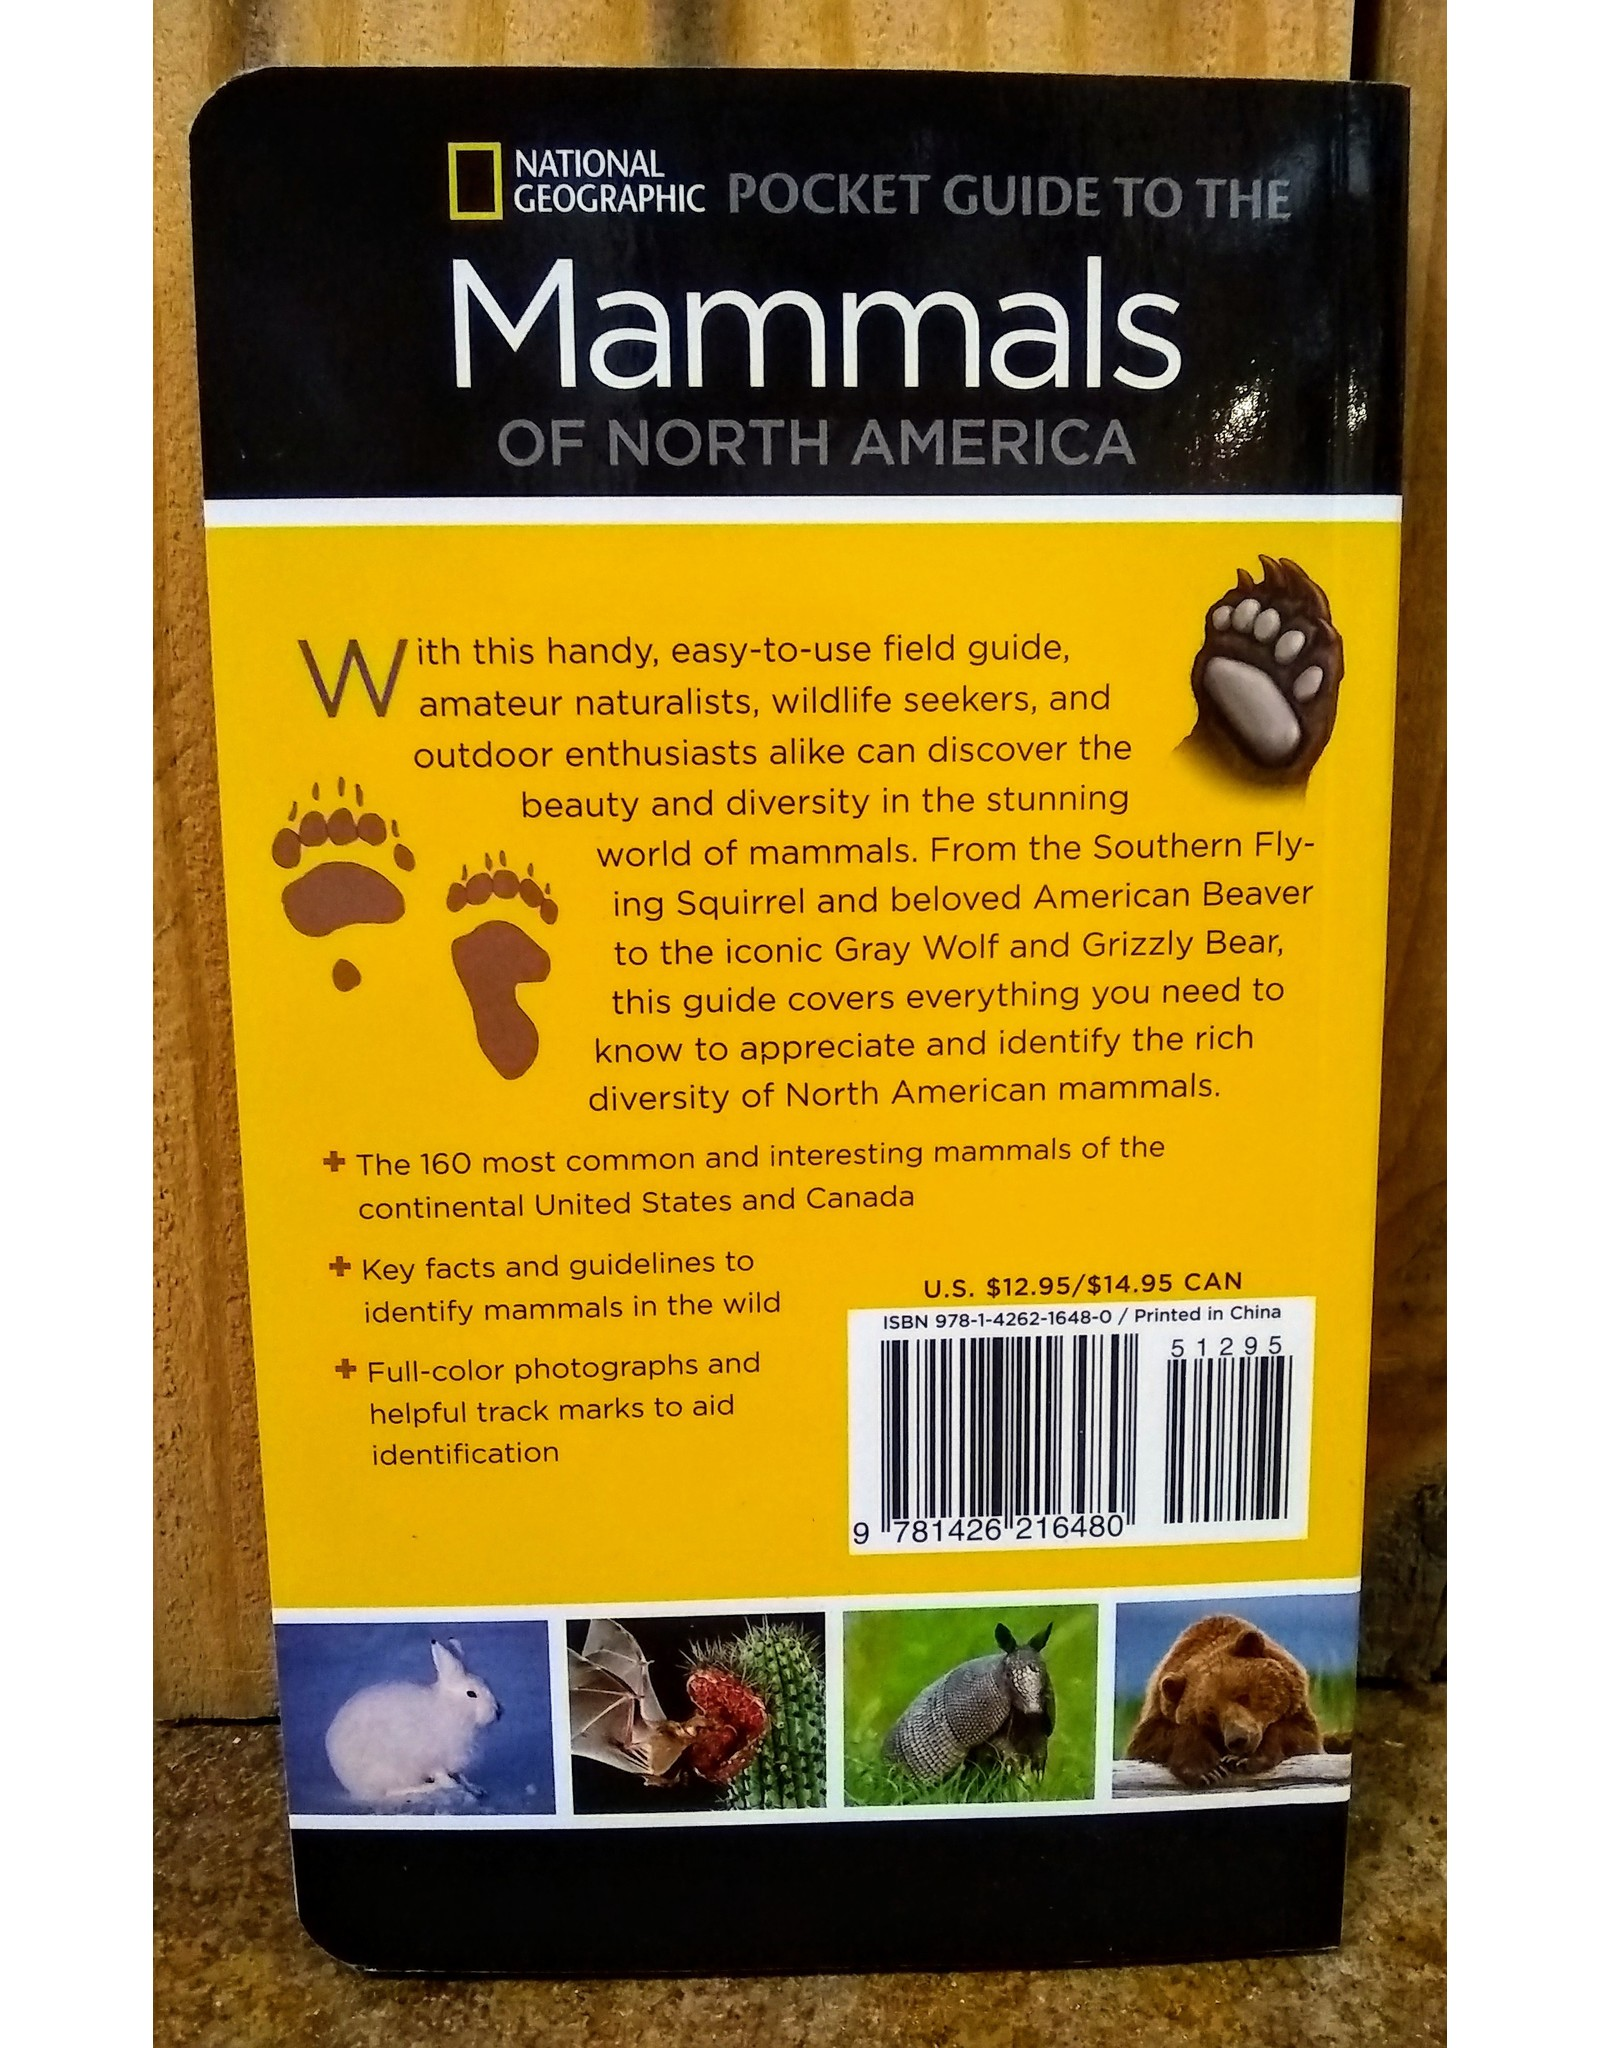 Book, Mammals of North America, Nat Geo. Pocket Guide